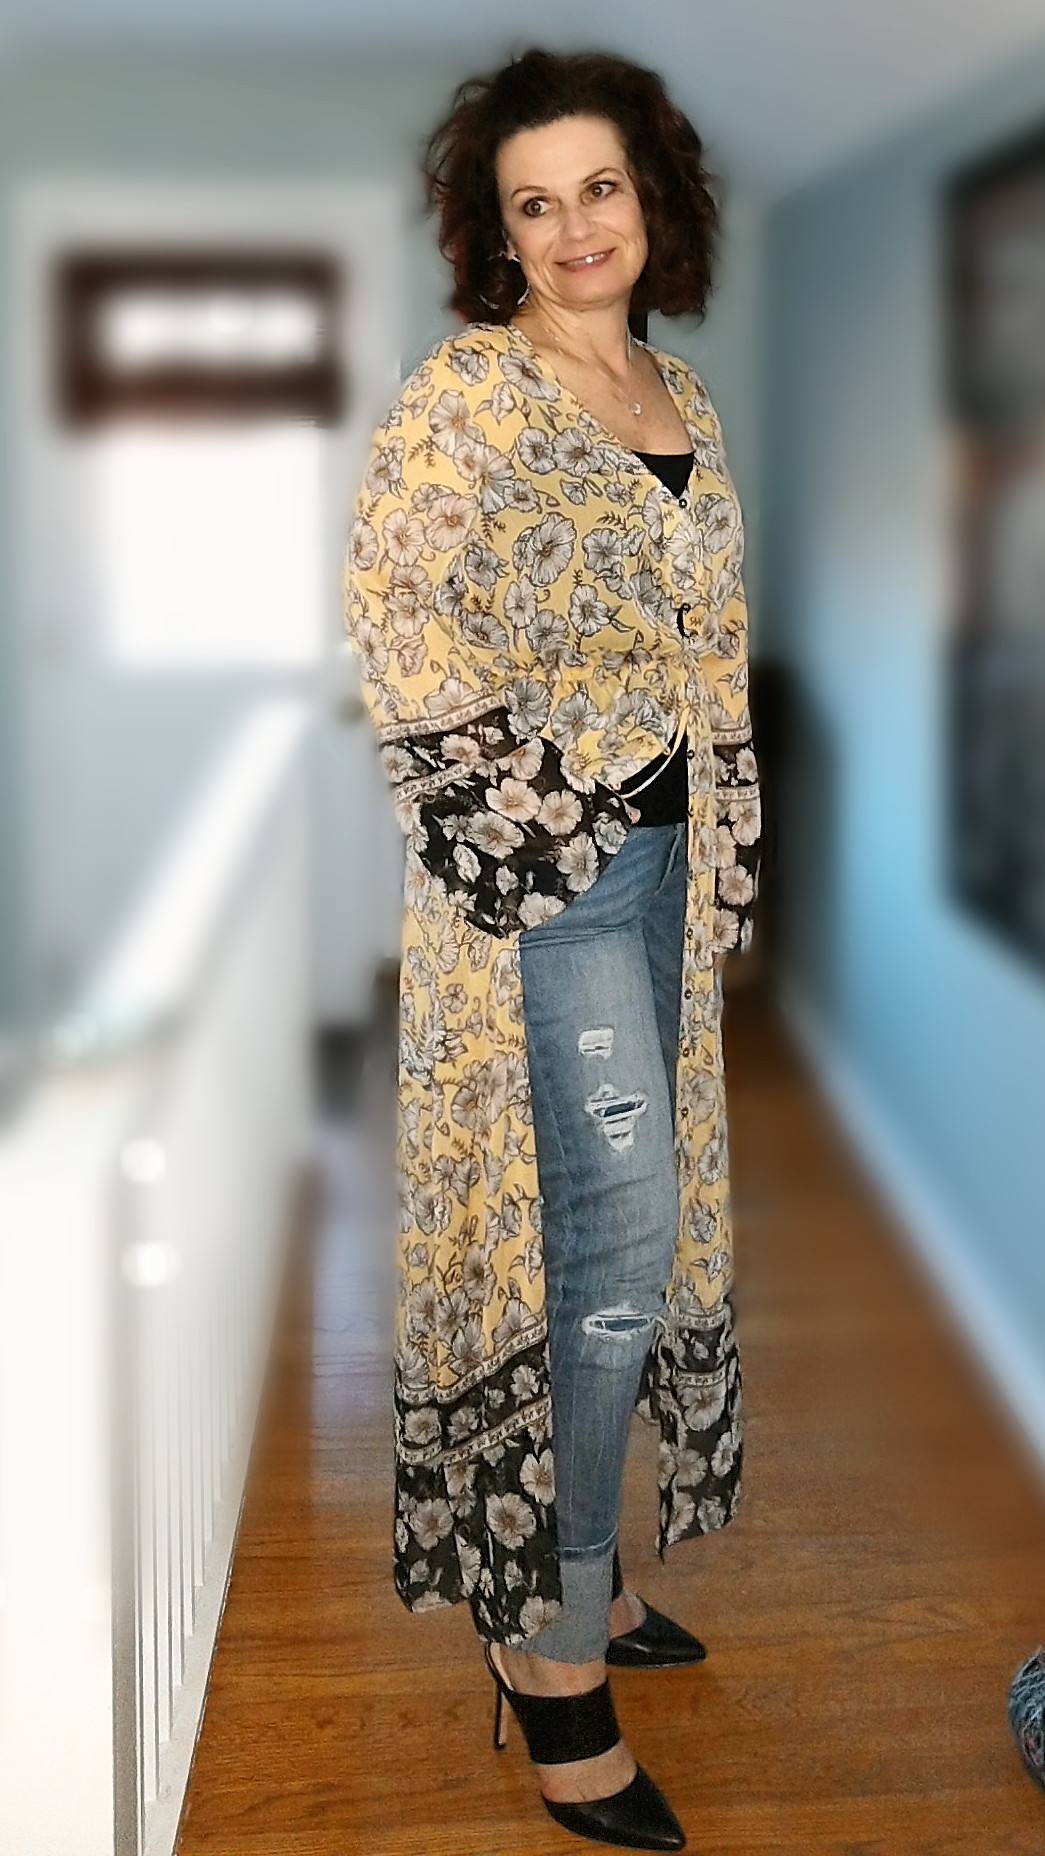 Dress with Jeans - Just another view.